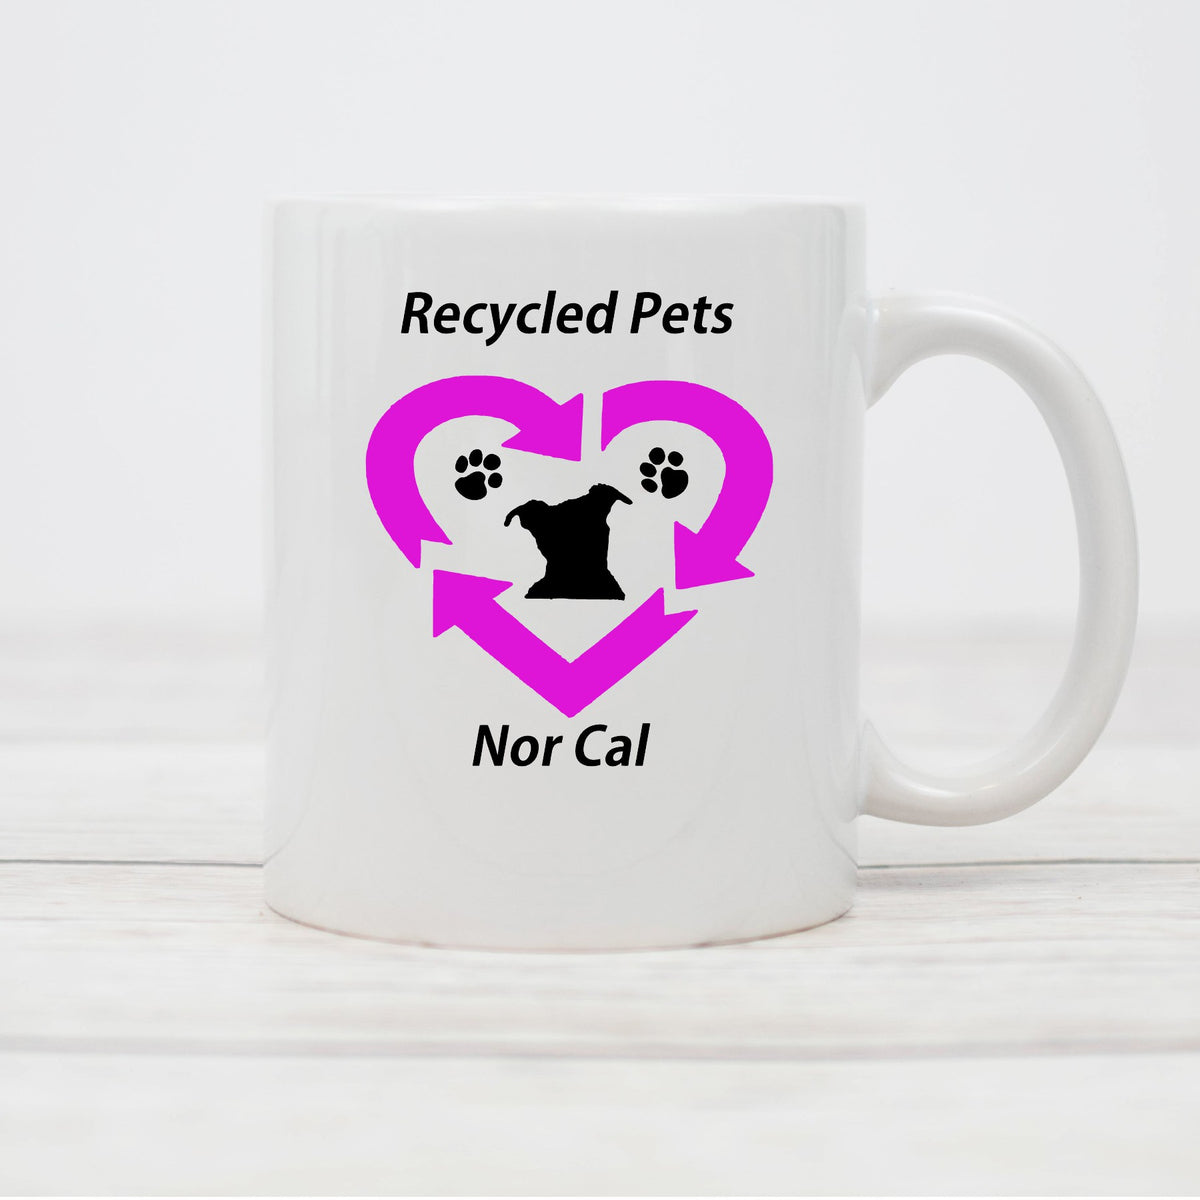 Recycled Pets NorCal Coffee Mug